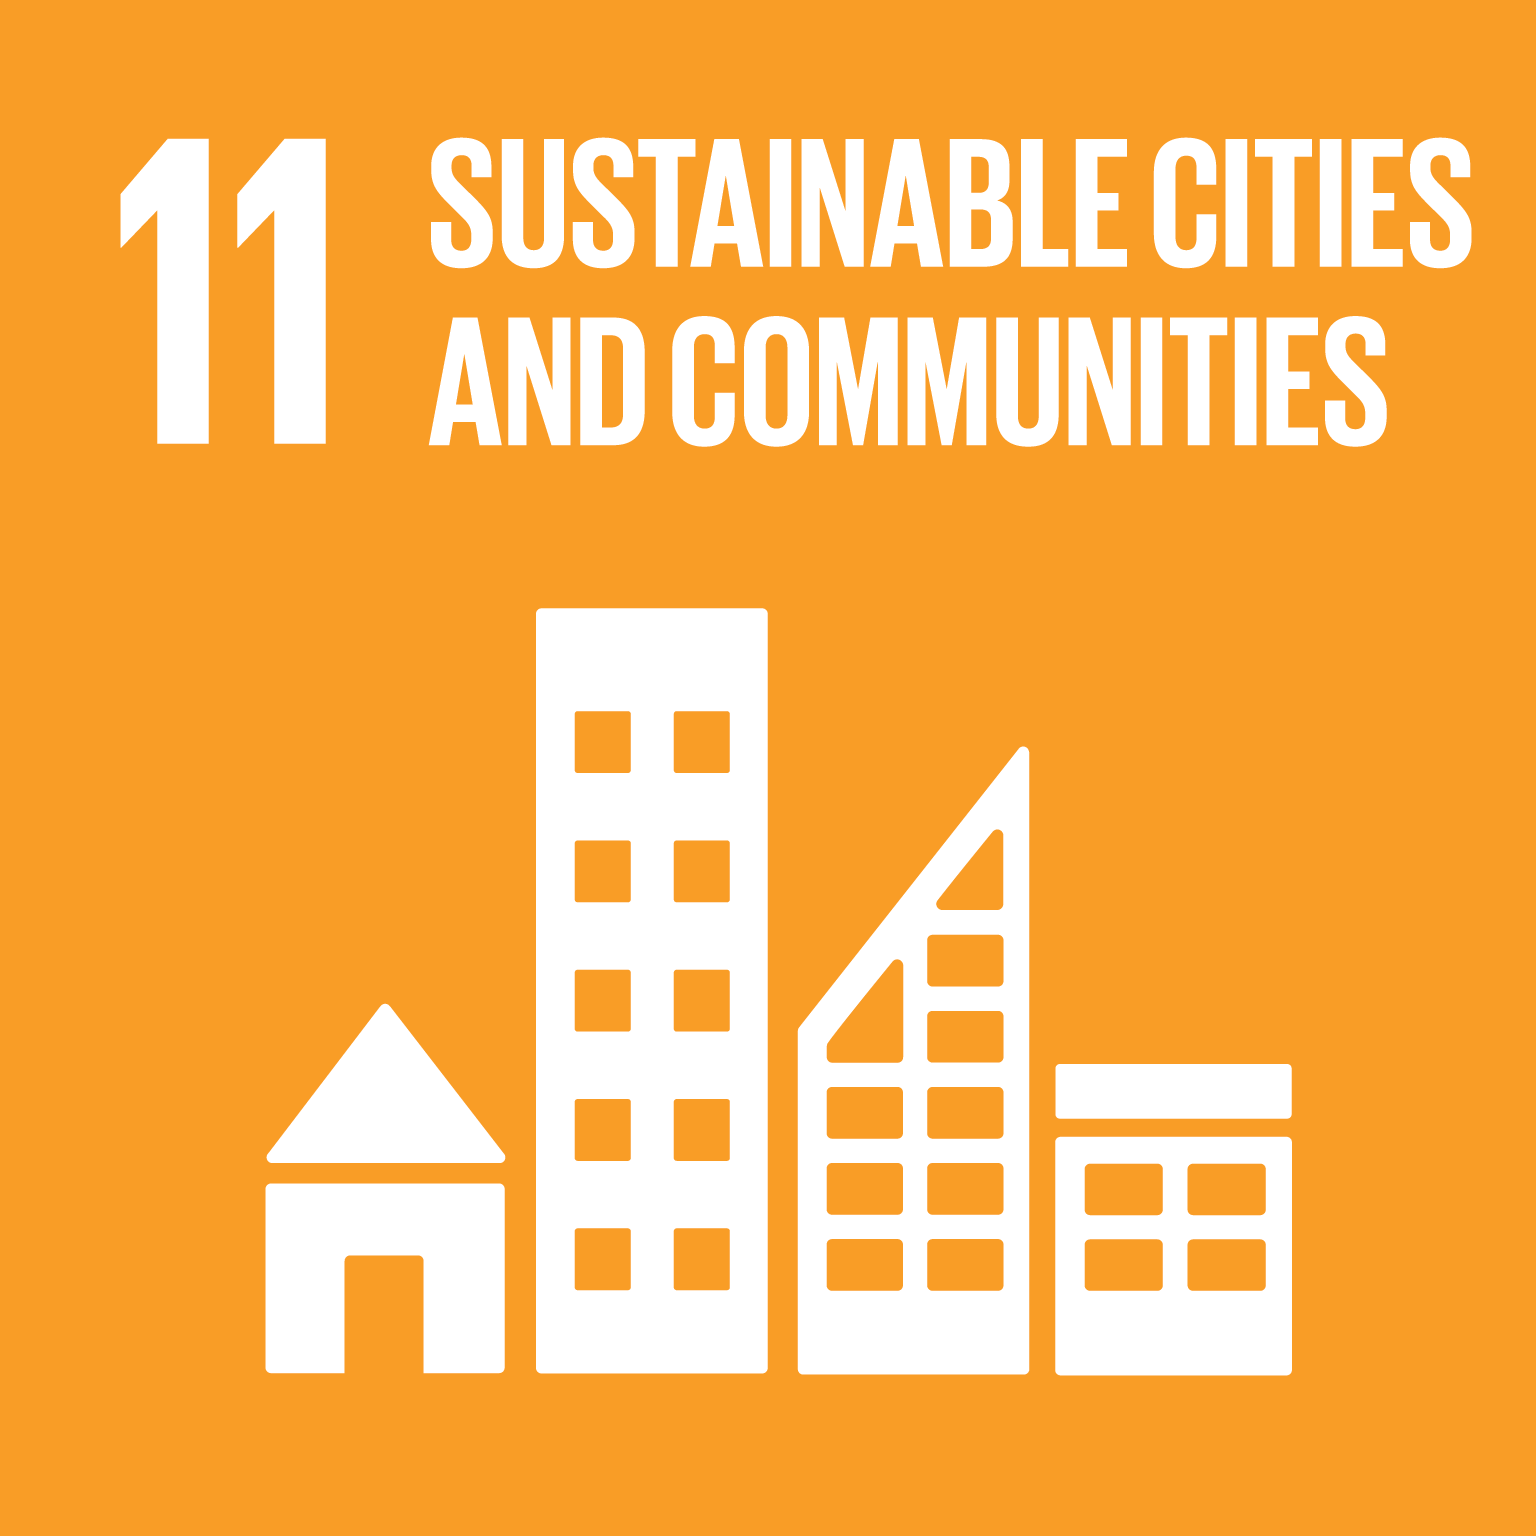 SDG 11 Posters